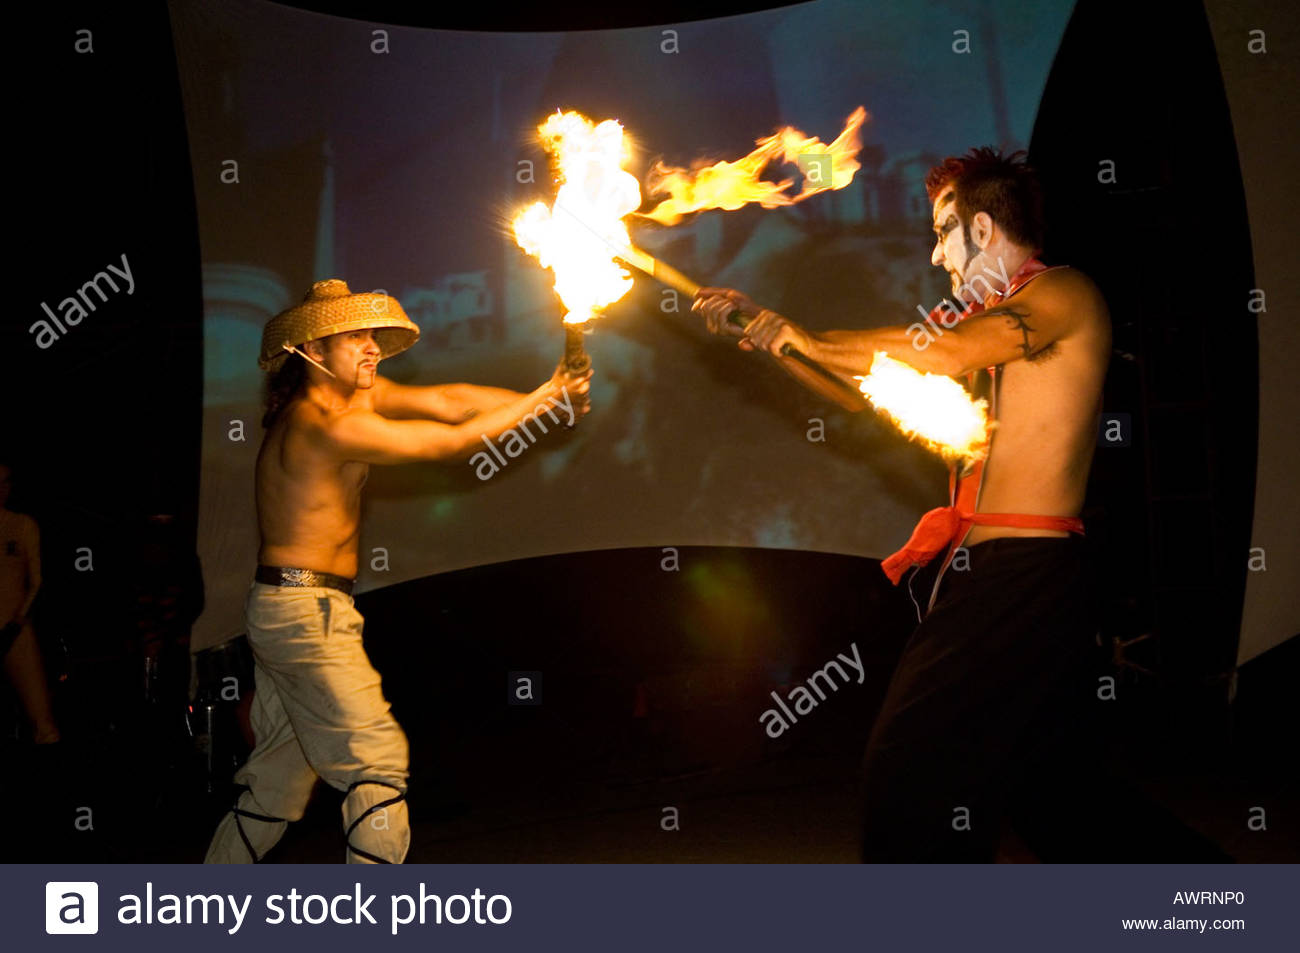 Elemental Artists another pyrotechnic group based performing in a Flam Chen theatrical show called KABOOM - Stock Image